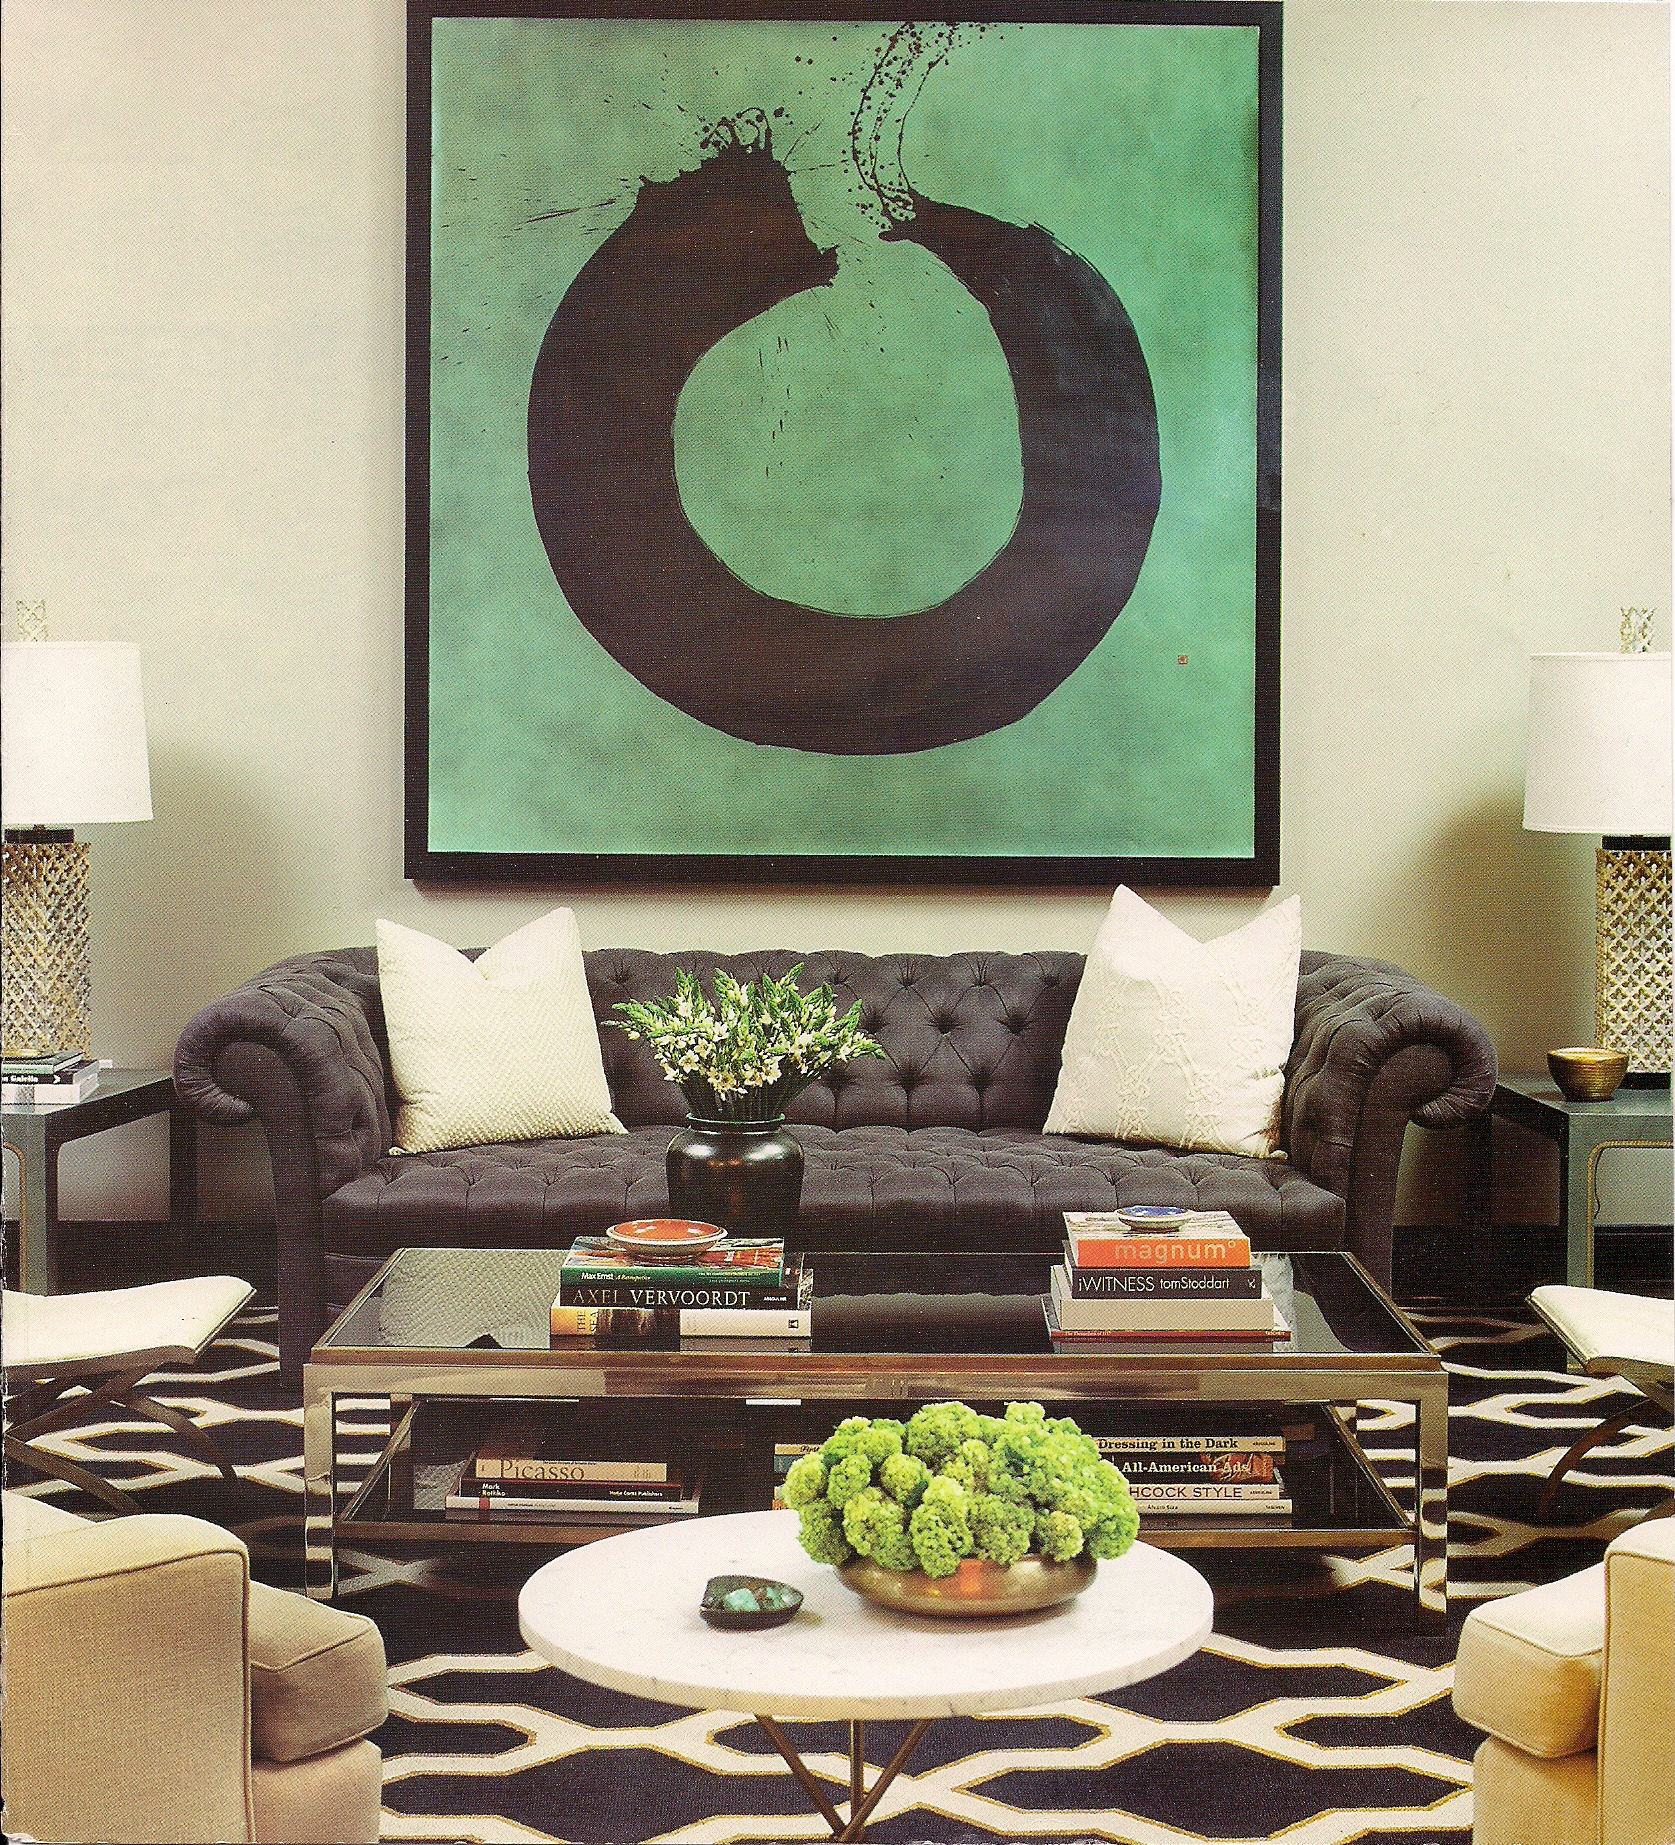 Glamorous Interior Design By Kelly Wearstler: How's Your Ensō Today?